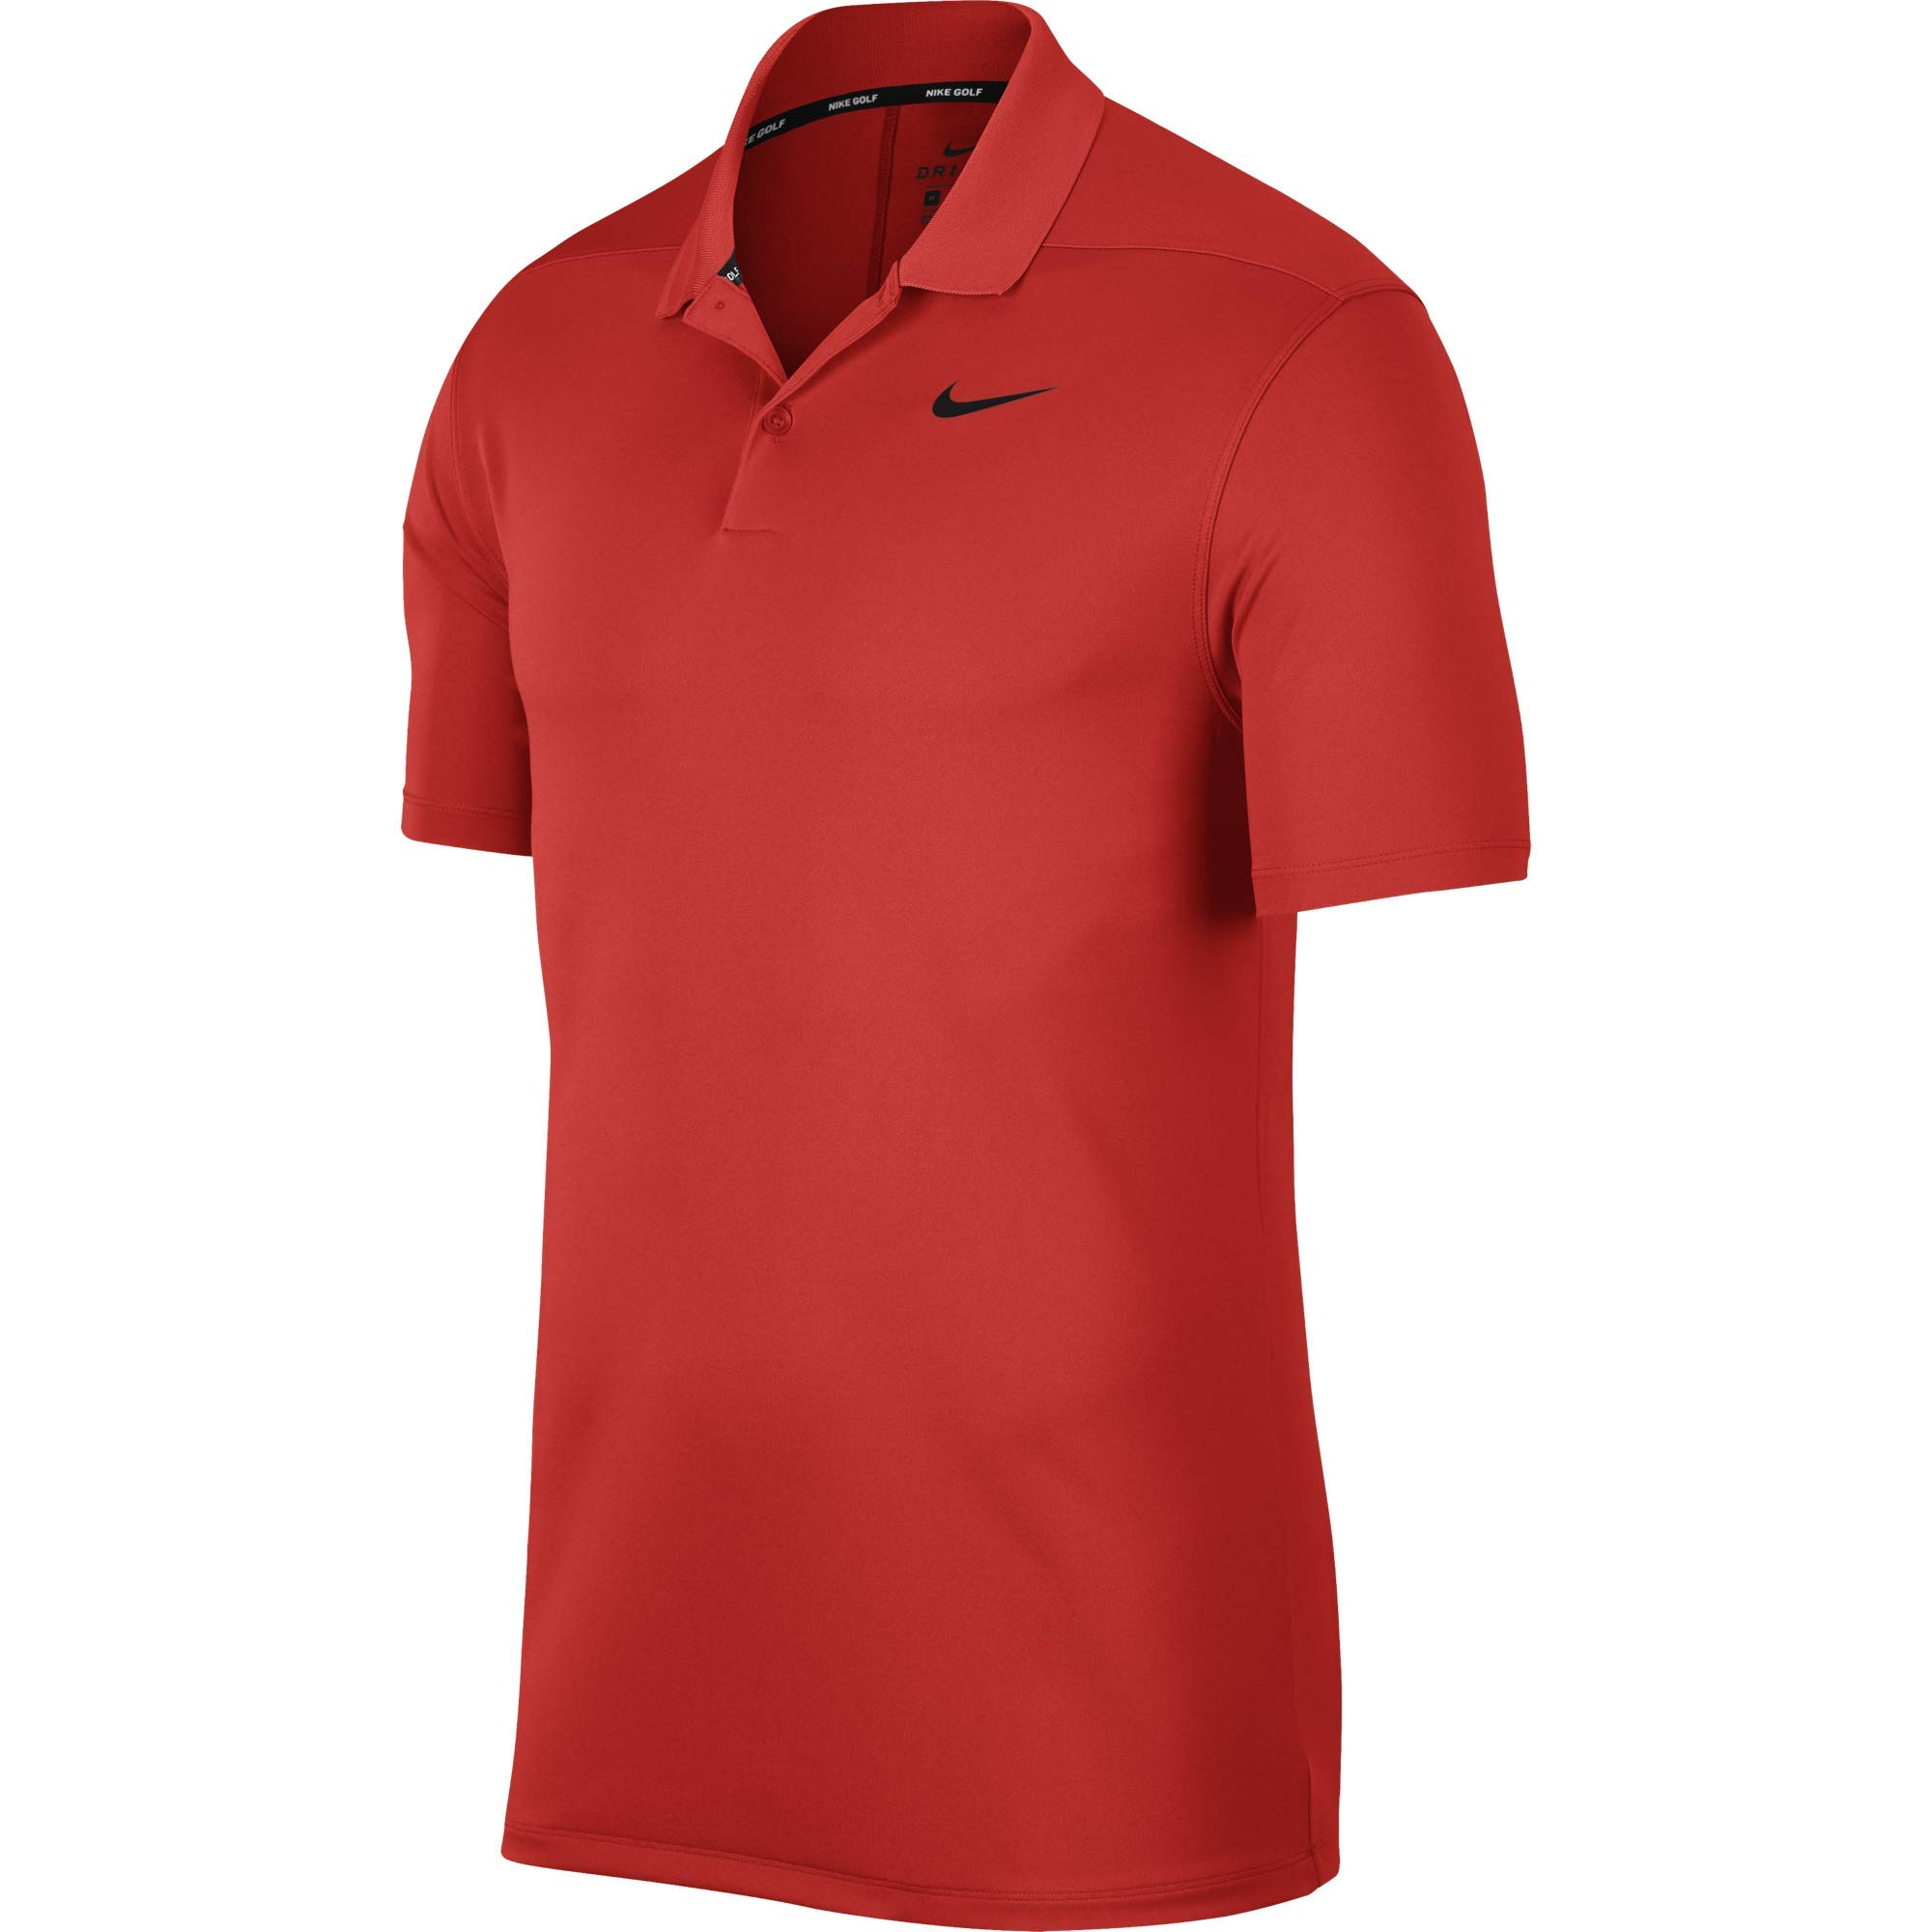 Nike Men's Dry Victory Polo Solid Left Chest, Habanero Red/Black, Small